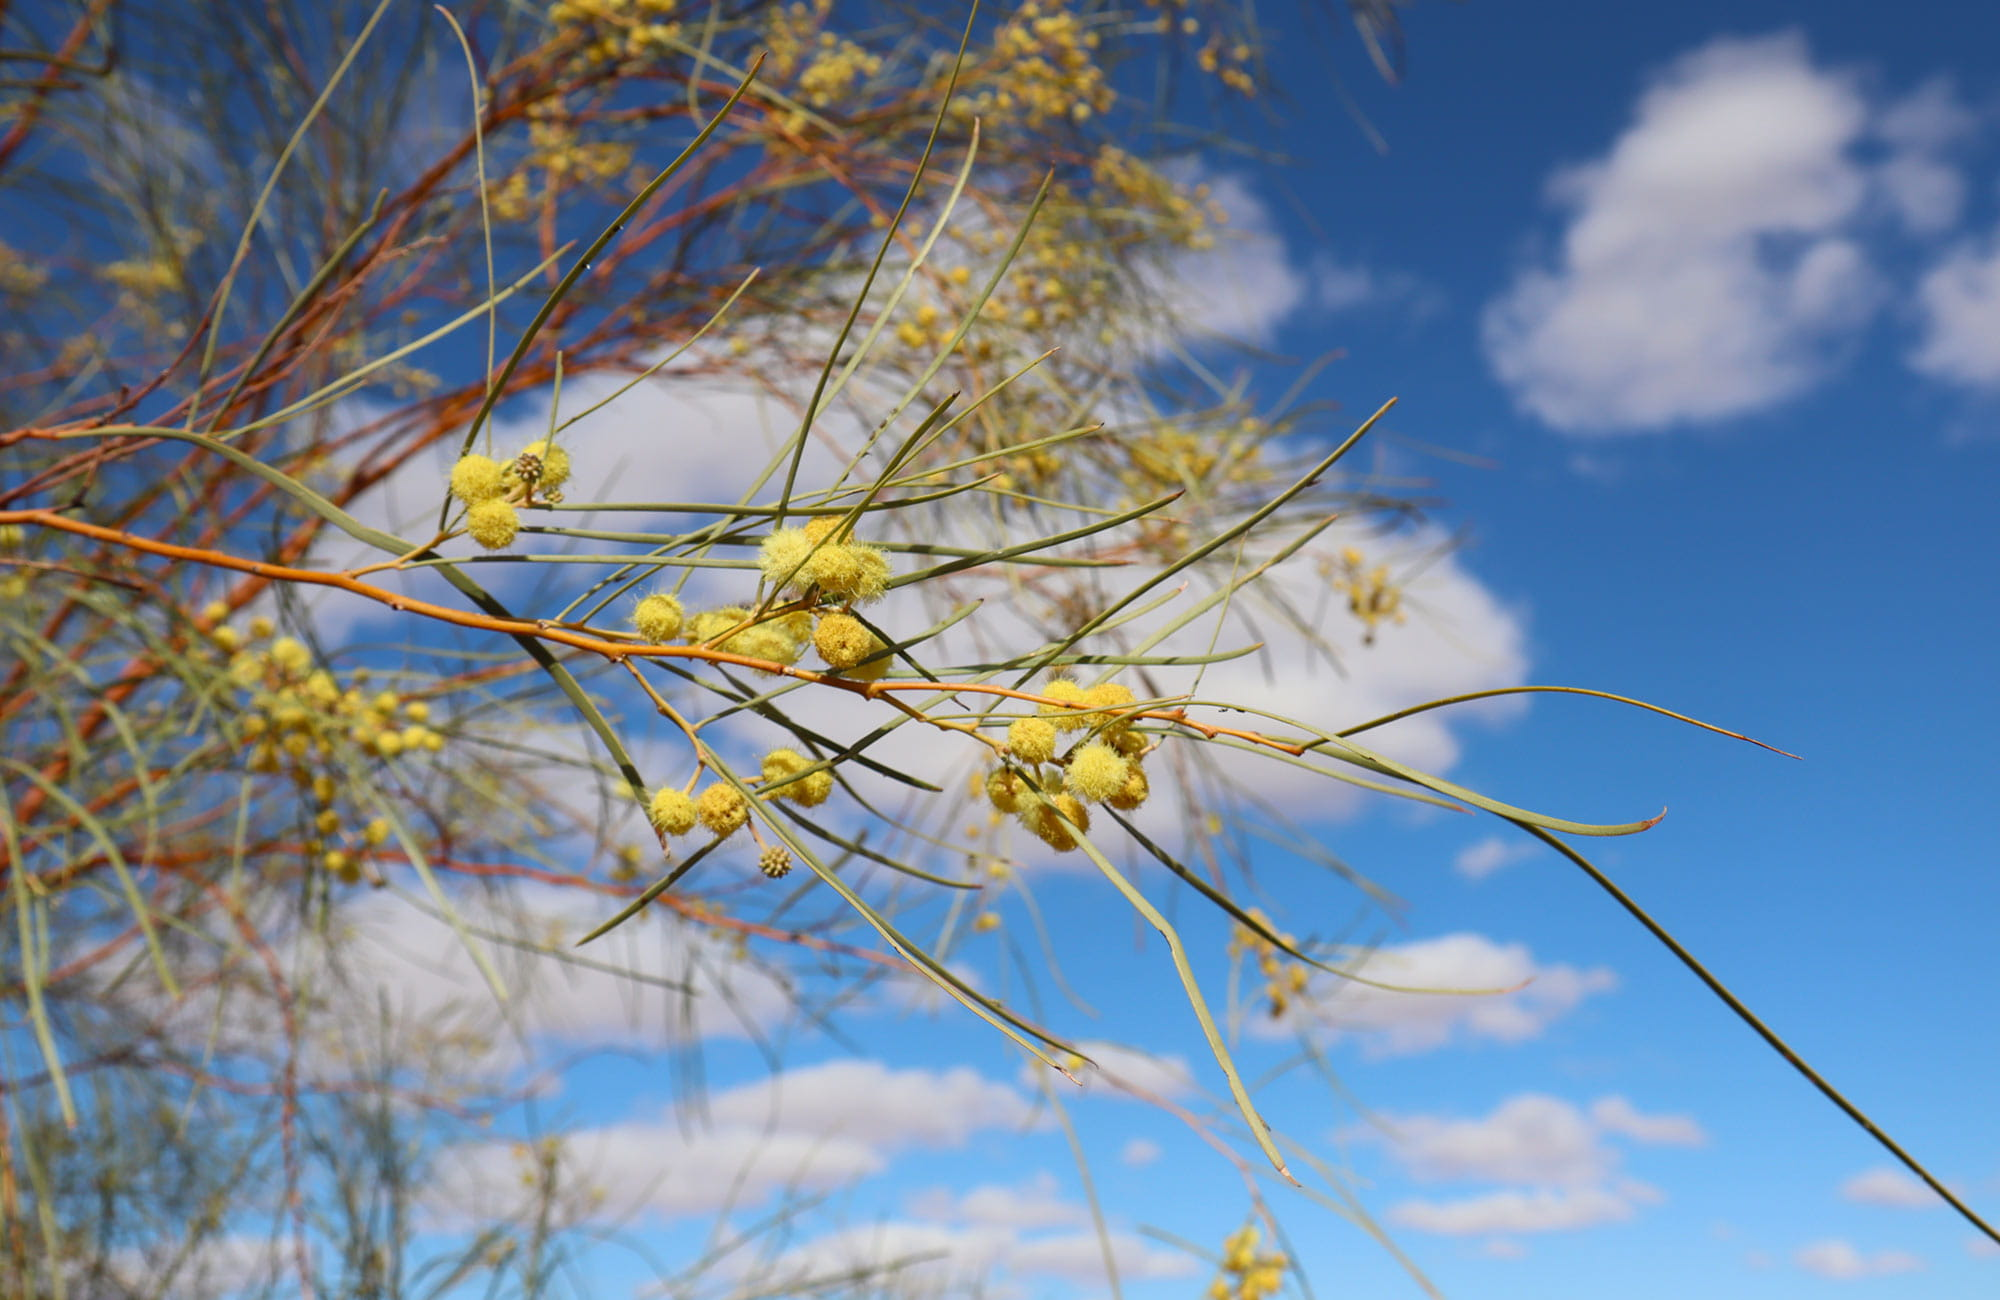 Shrubby wattle against a blue sky. Photo: Amanda Cutlack/DPIE